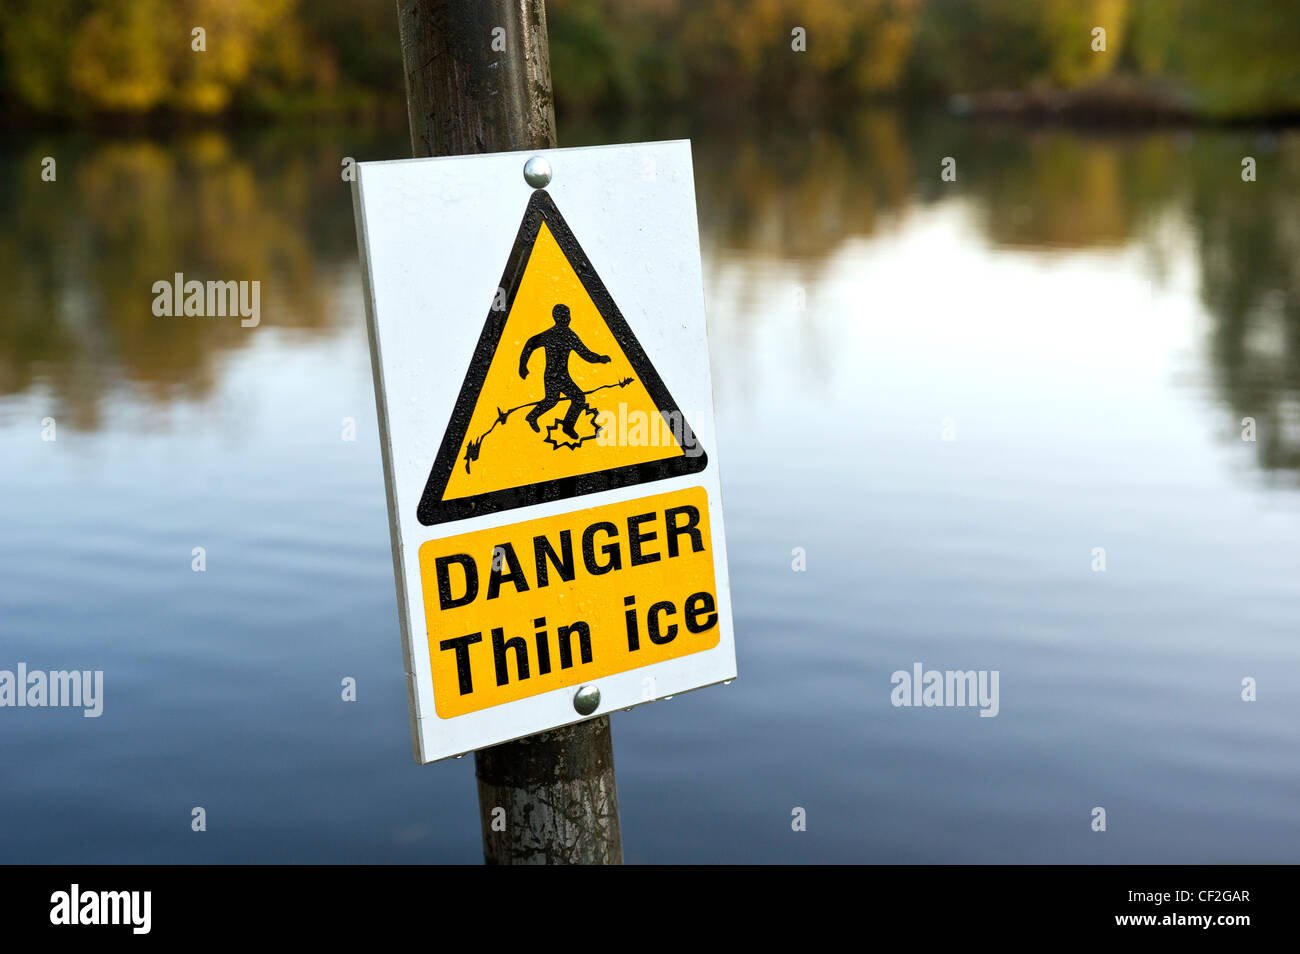 A sign warning about the danger of thin ice. - Stock Image